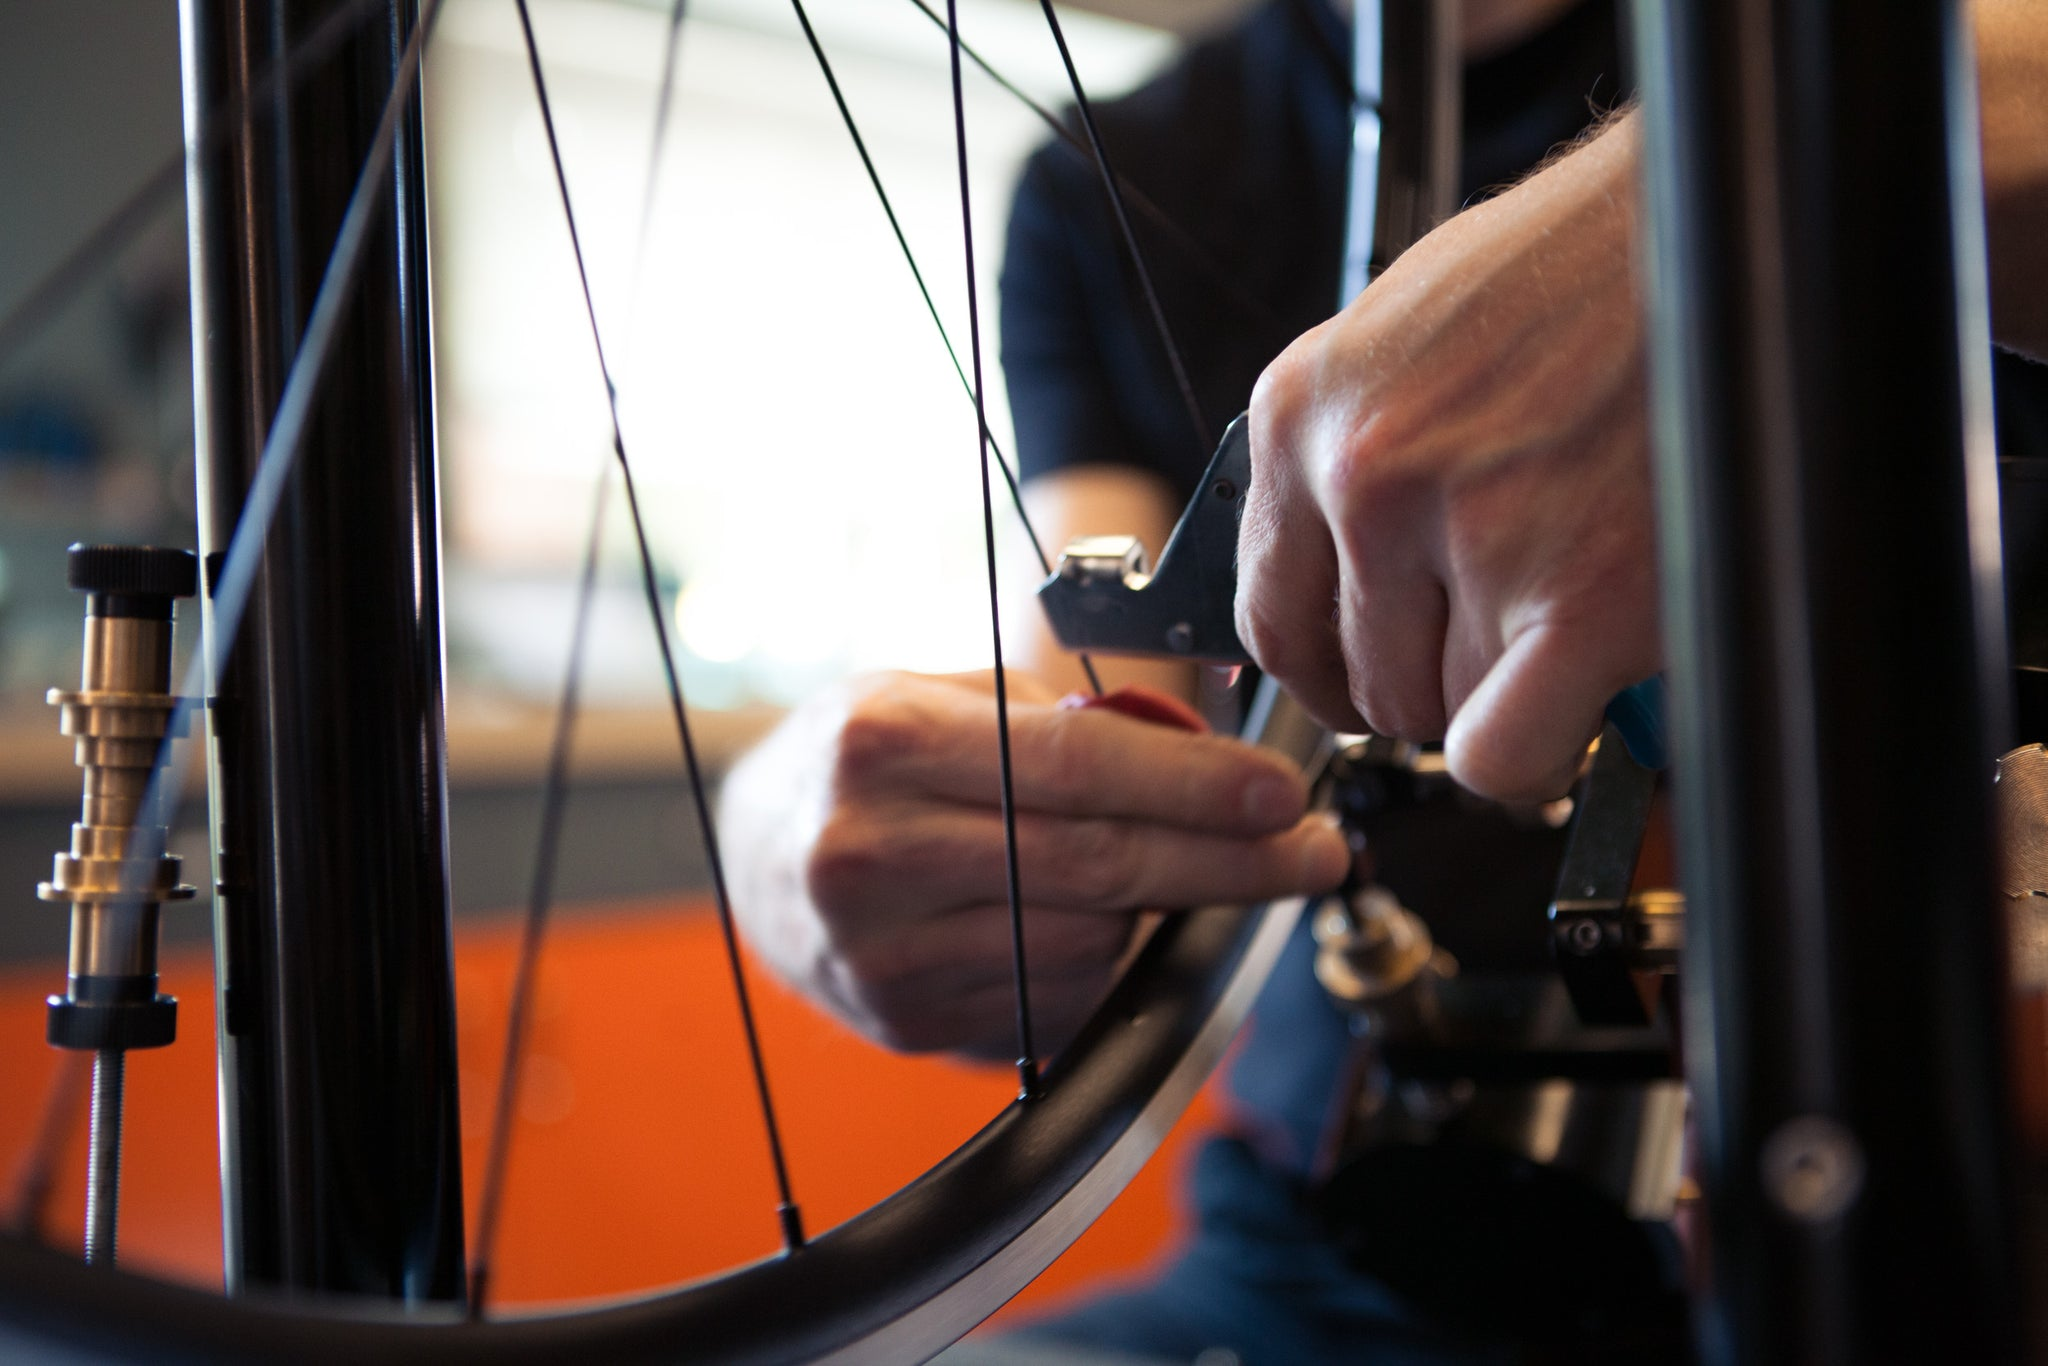 Michael building a custom bicycle wheel